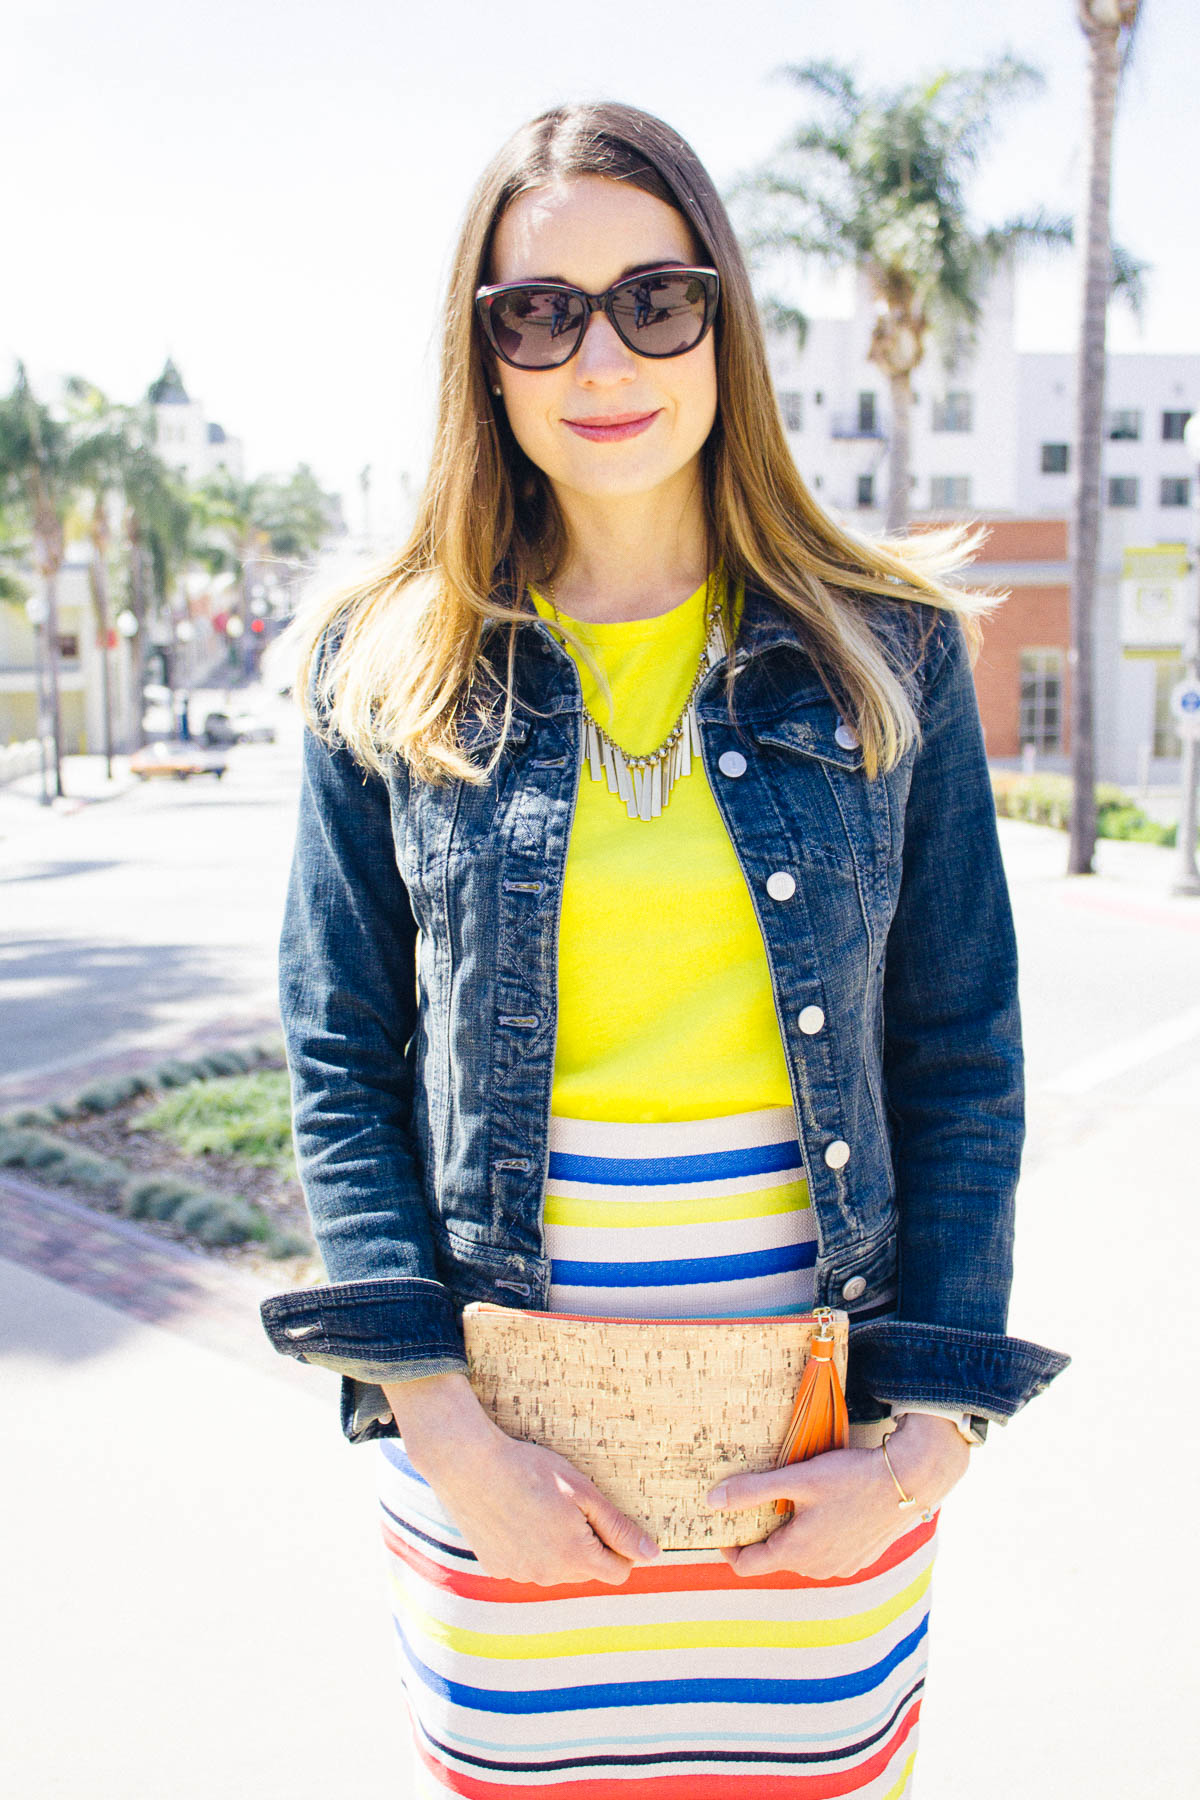 sunny bright yellow tee  // stripe skirt ( similar  and would look good with yellow tee) //  denim jacket  // statement necklace ( similar ) //  clutch